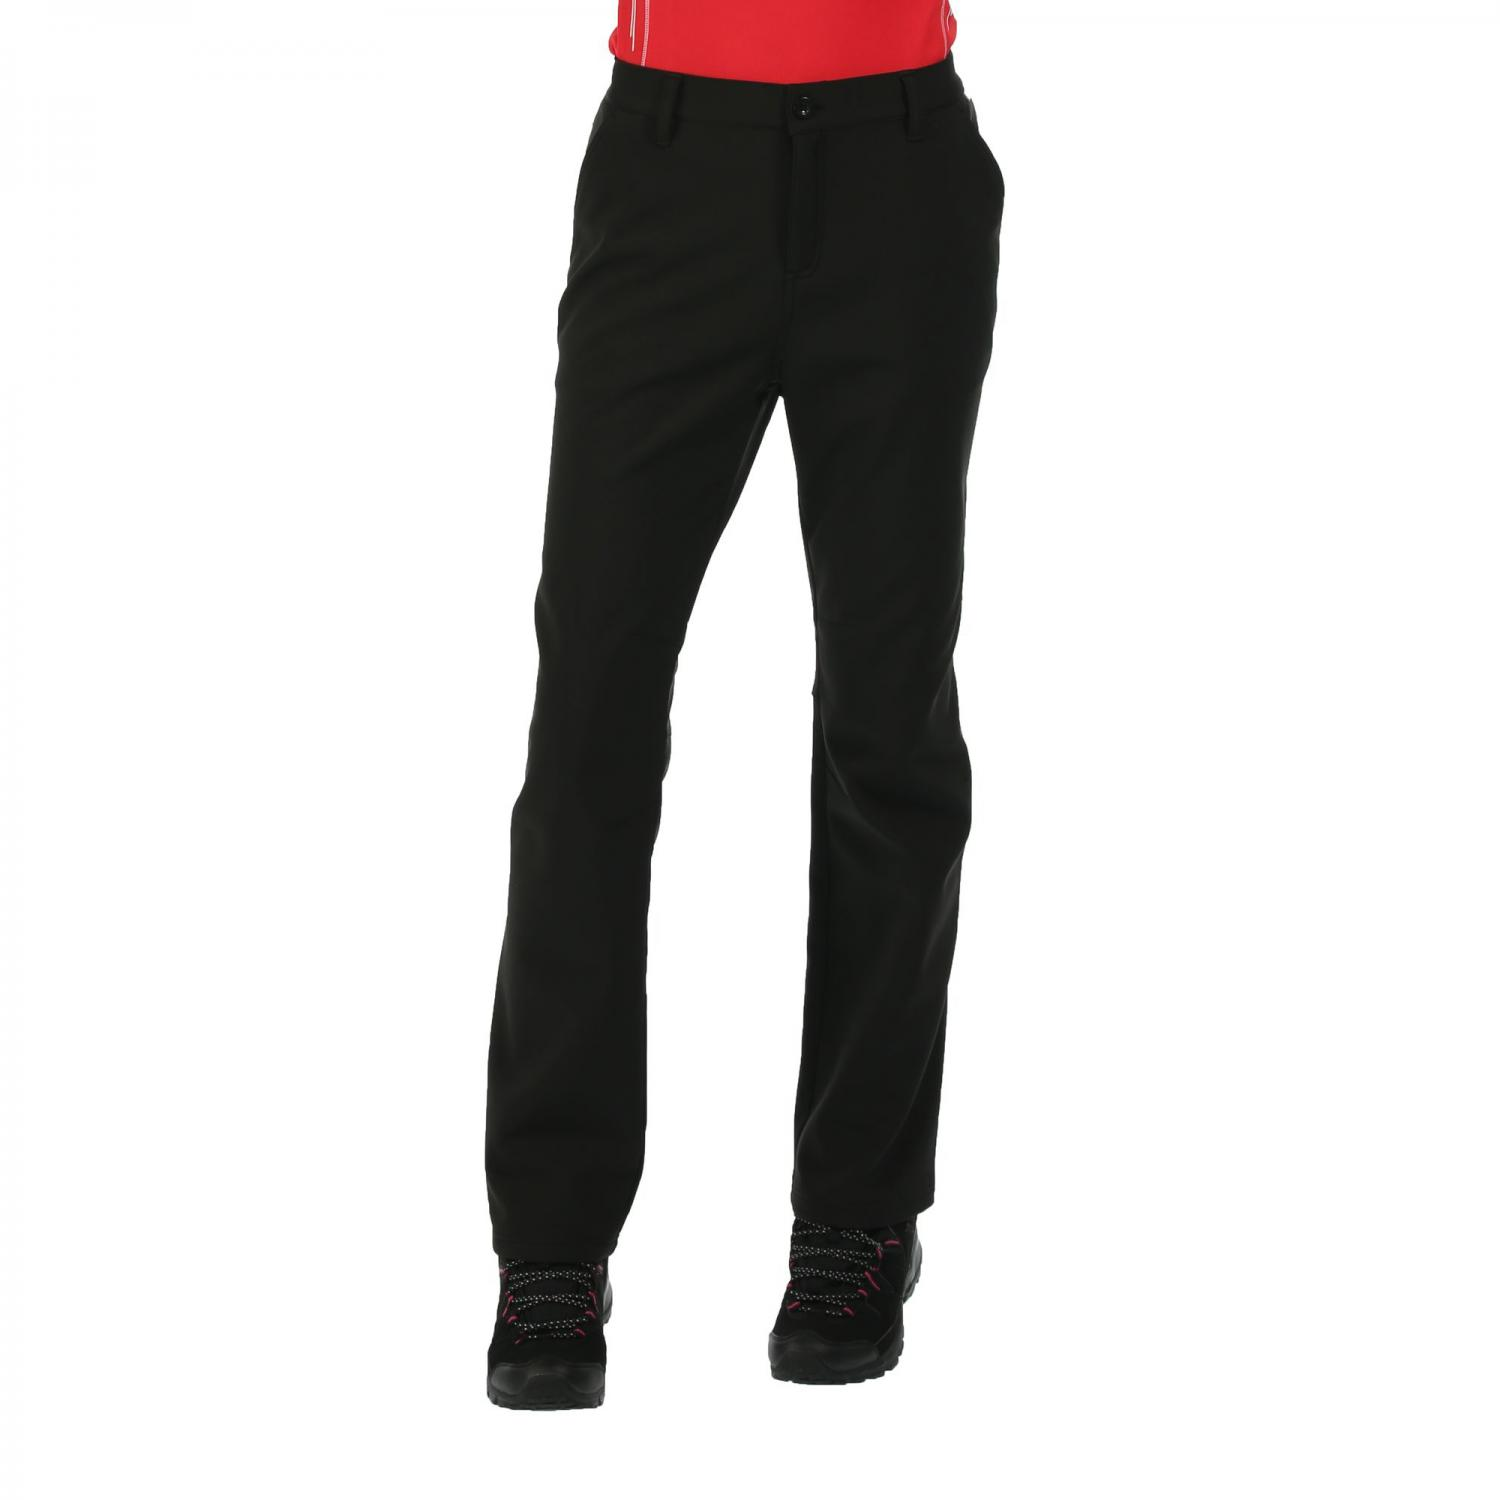 Womens Fenton Trousers Black